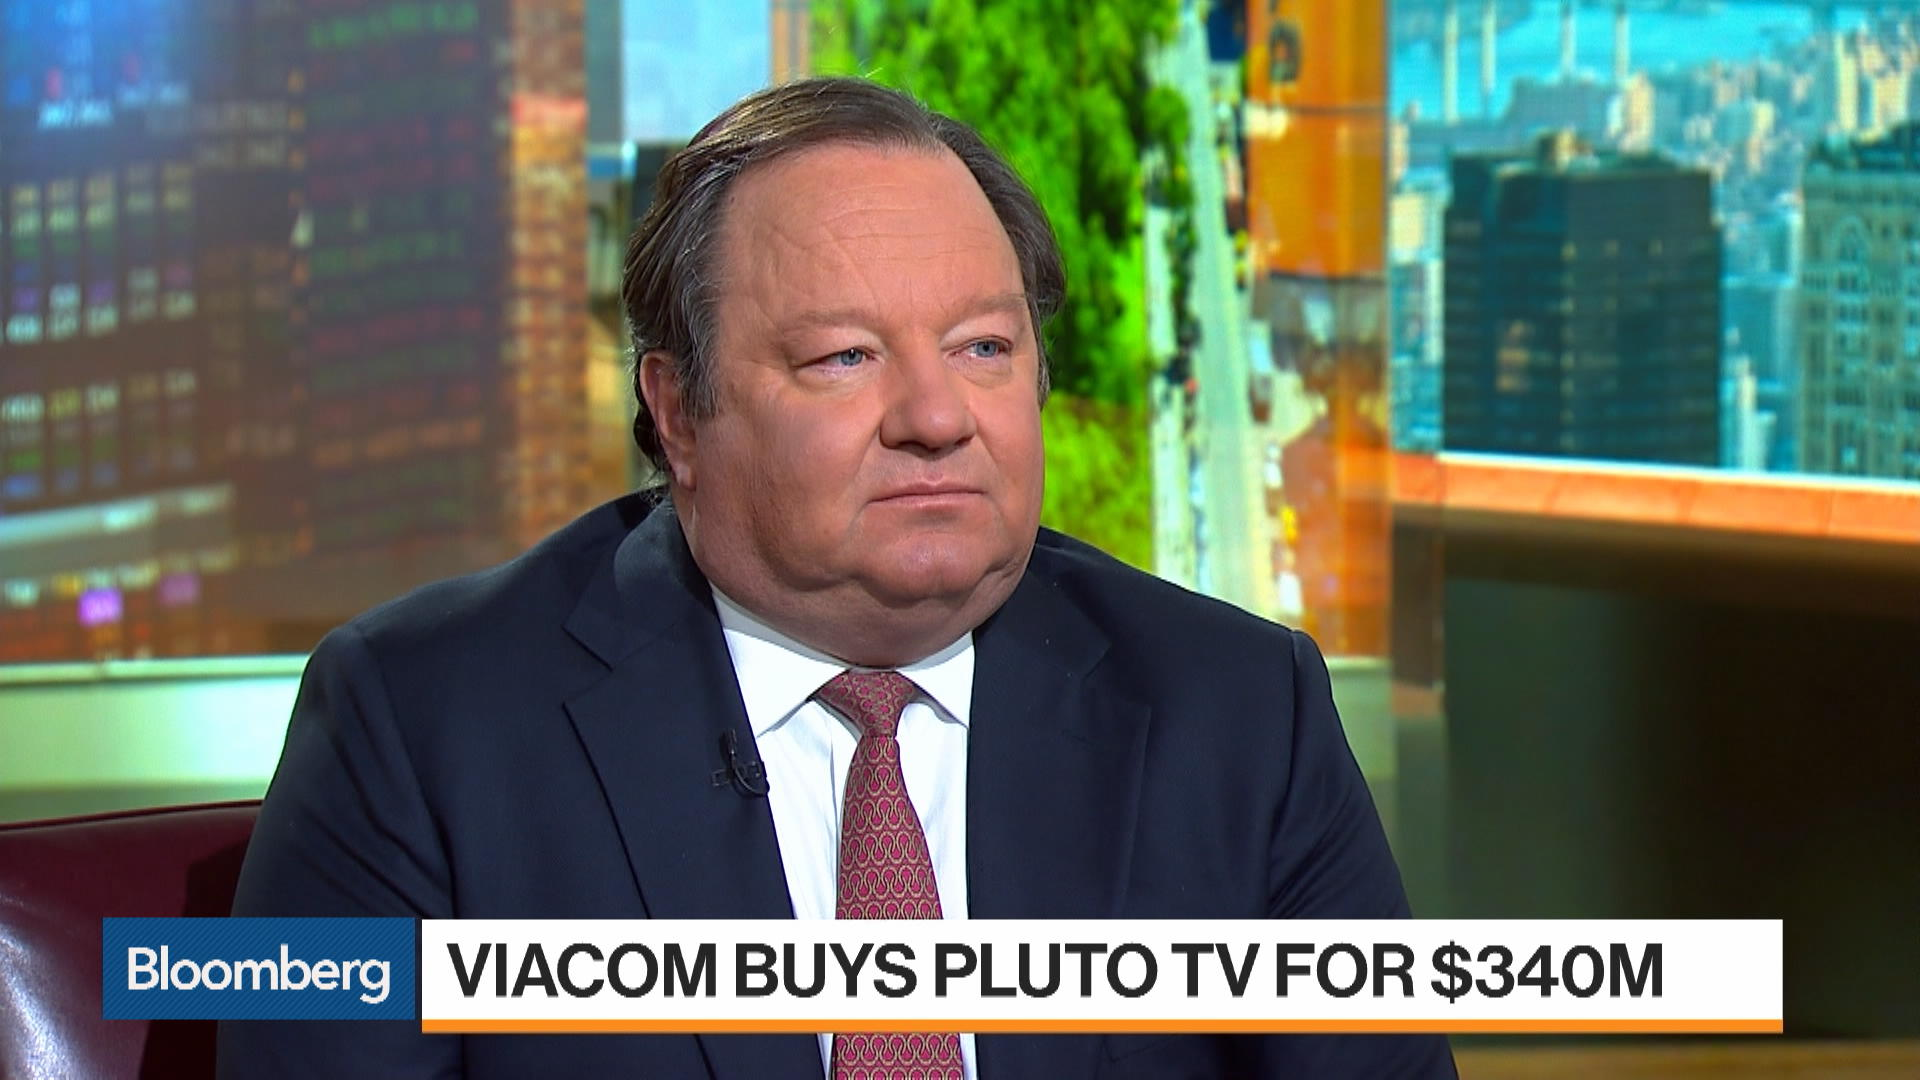 Viacom CEO Says 'Absolutely Not' on Need for CBS Deal